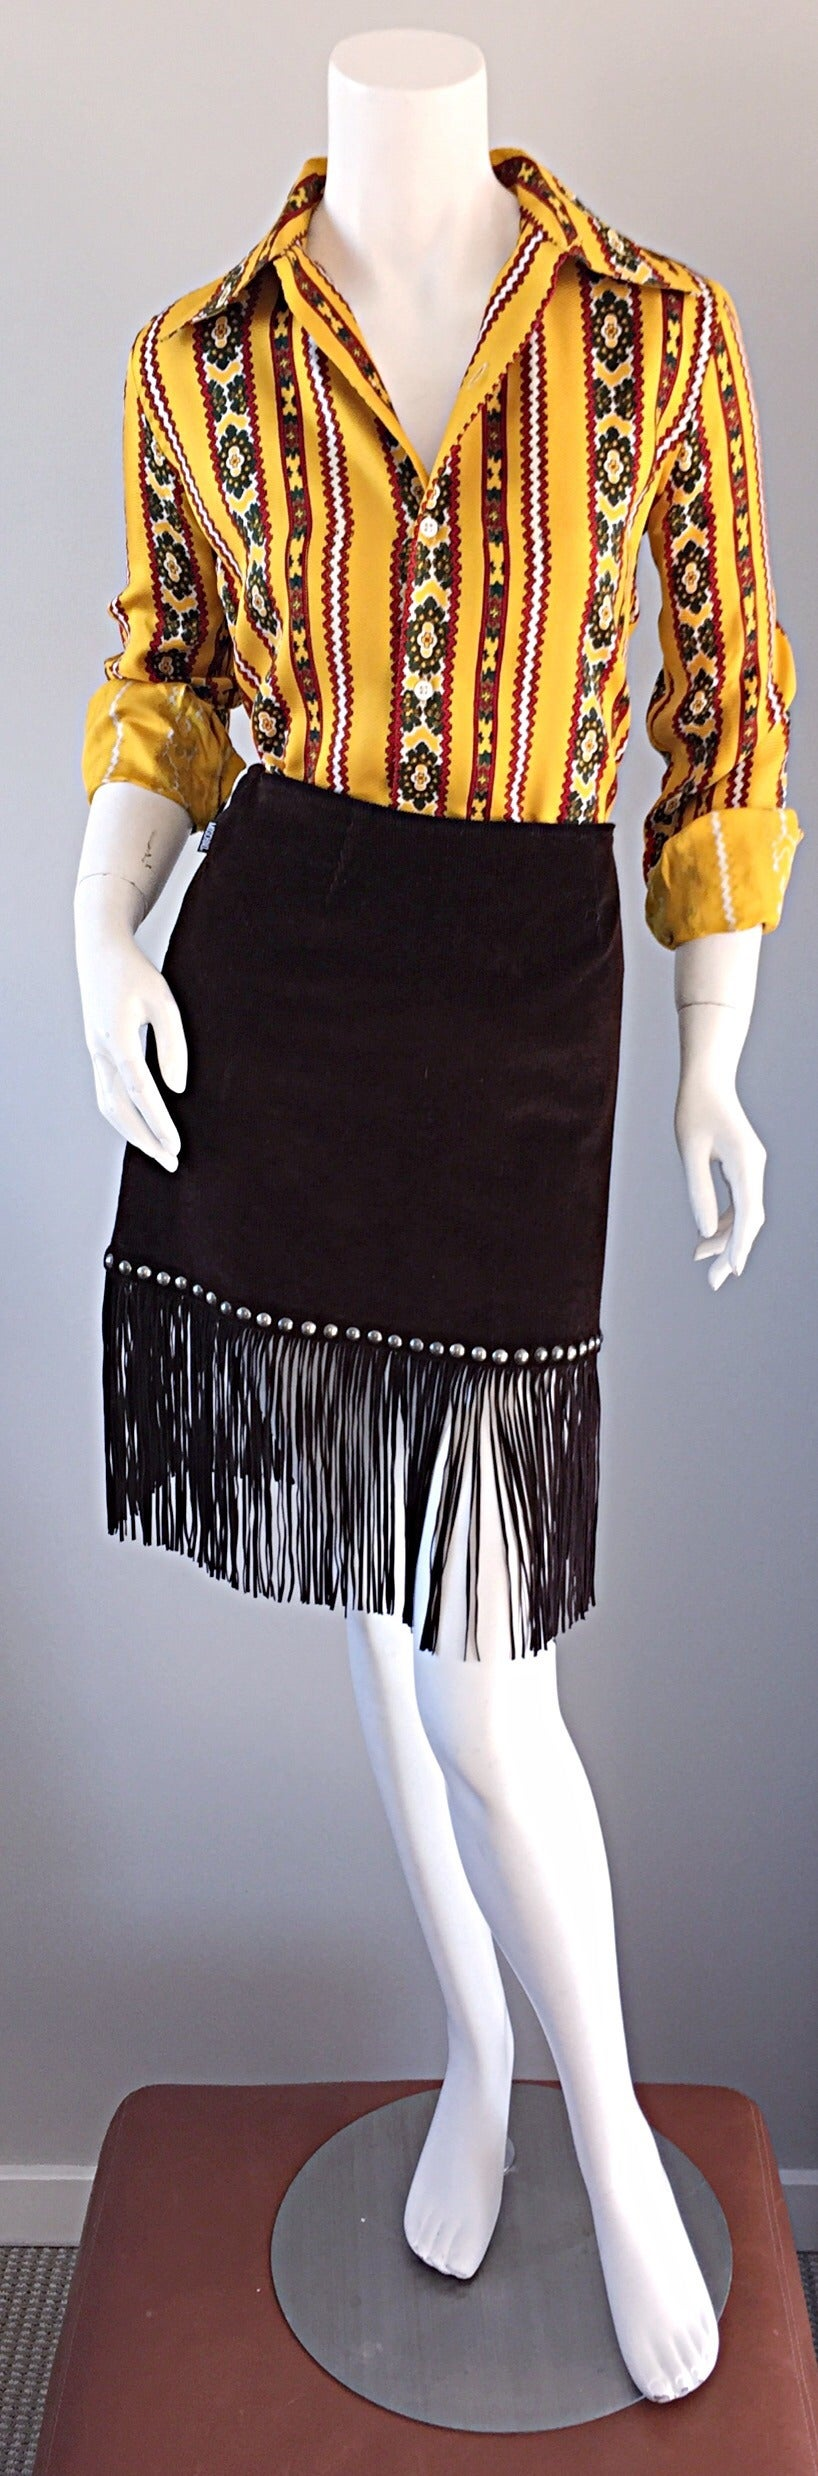 Vintage Moschino Brown Cotton Corduroy Studded 1990s 90s Fringe Mini Skirt 6